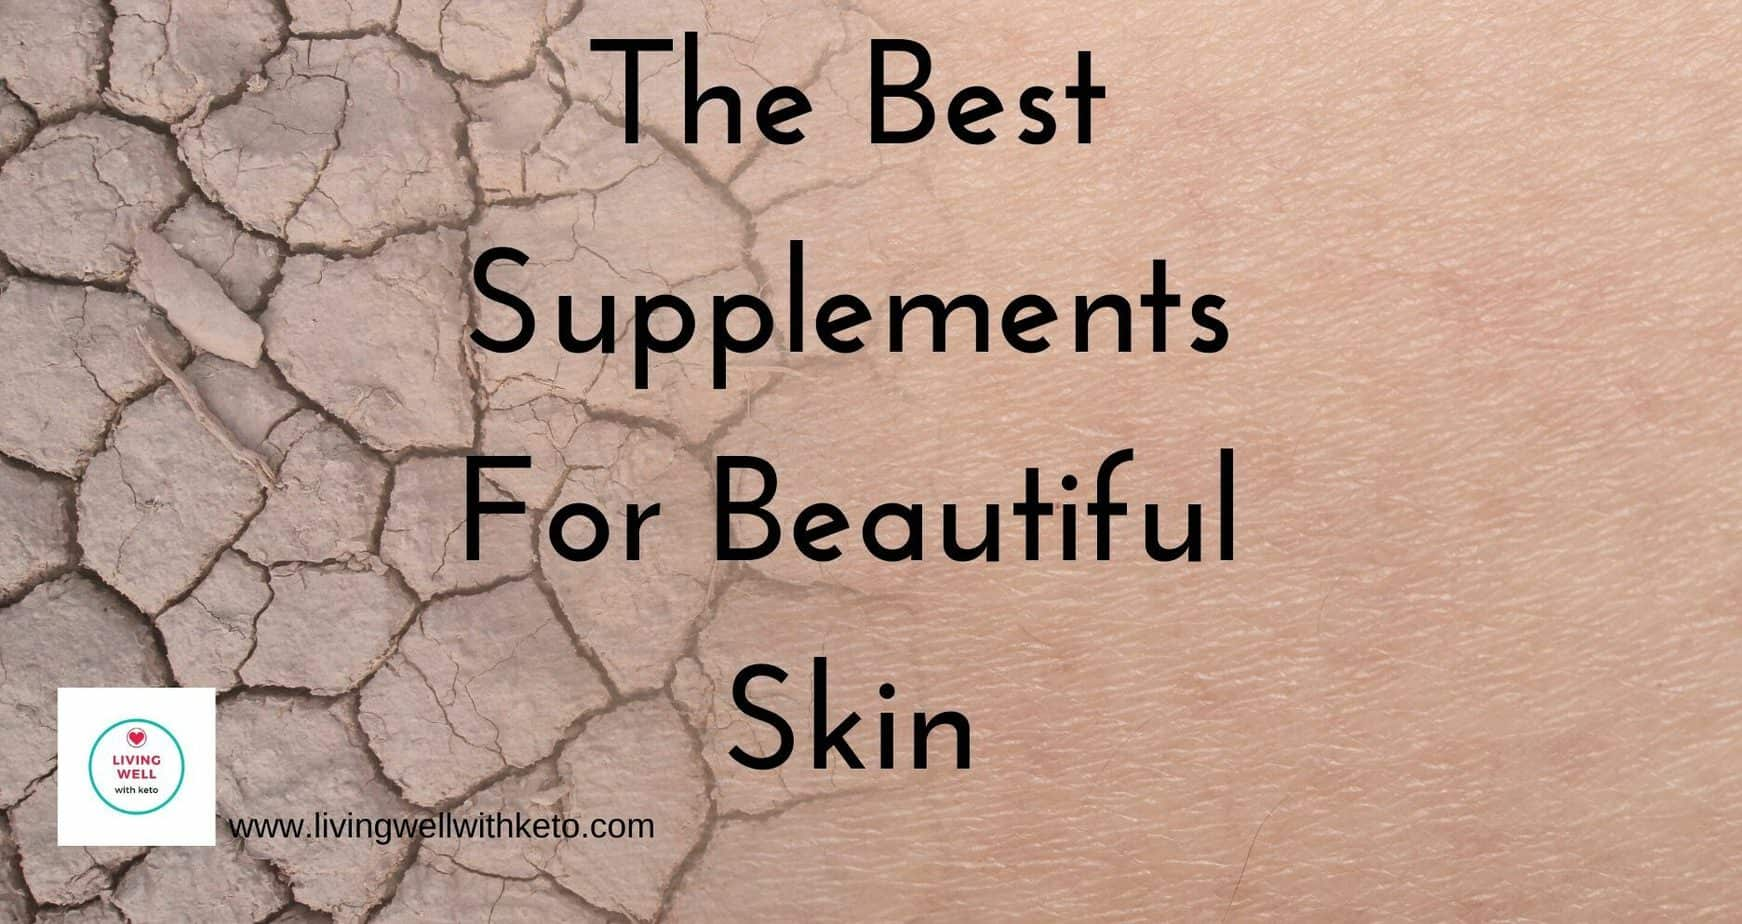 The best supplements for beautiful skin